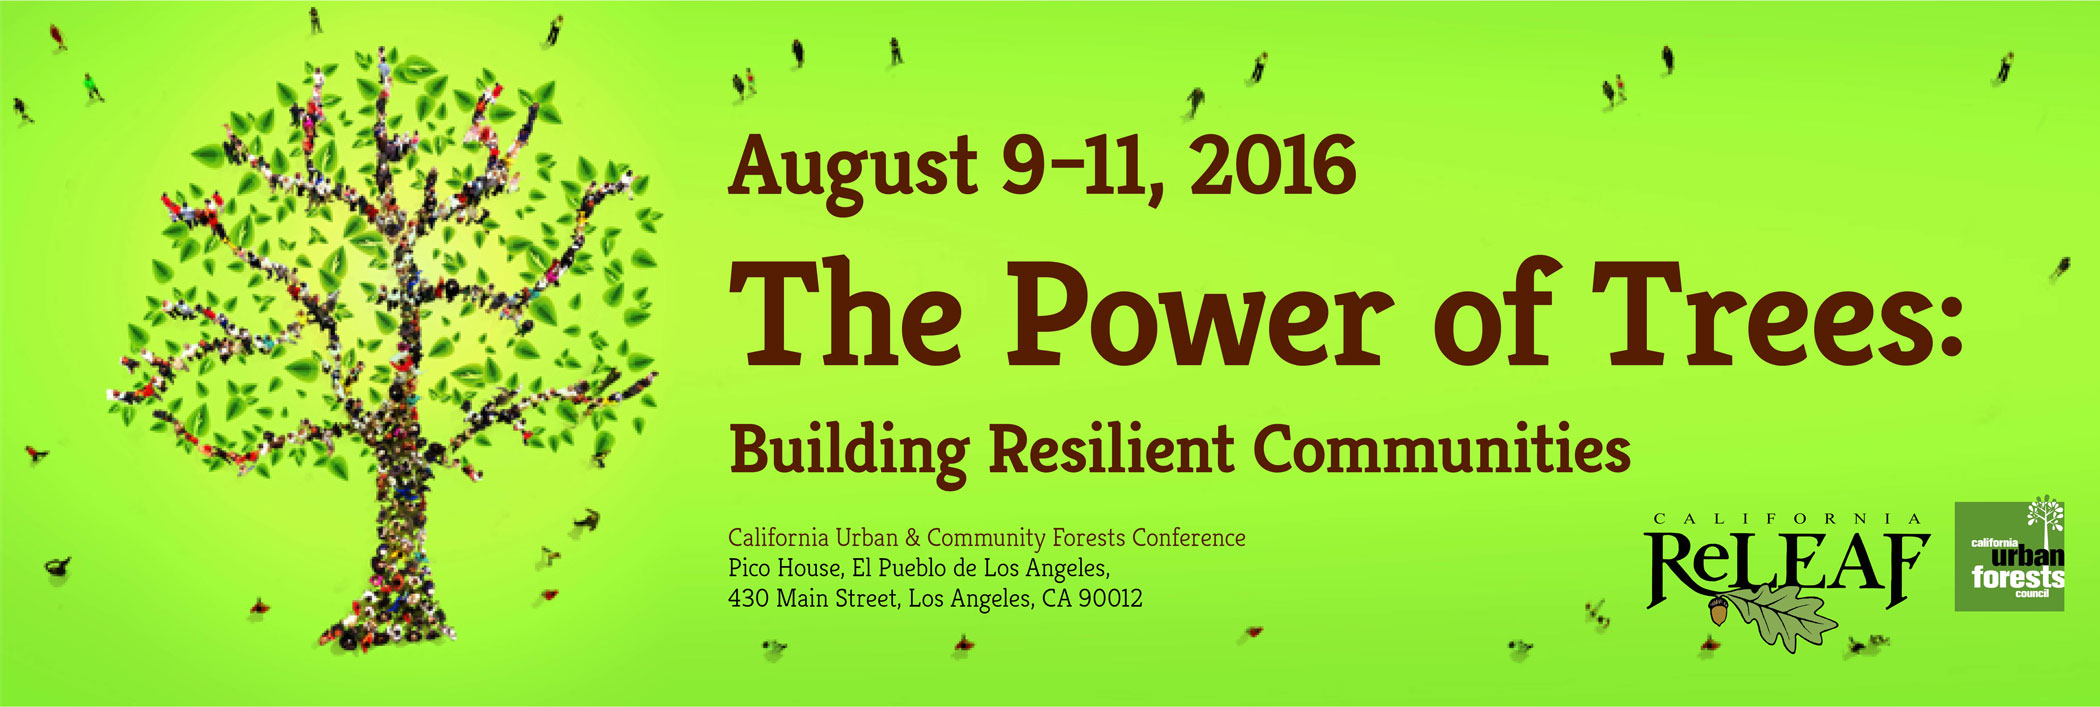 August 9 to 11, 2016. The Power of Trees. Building Resilient Communities.